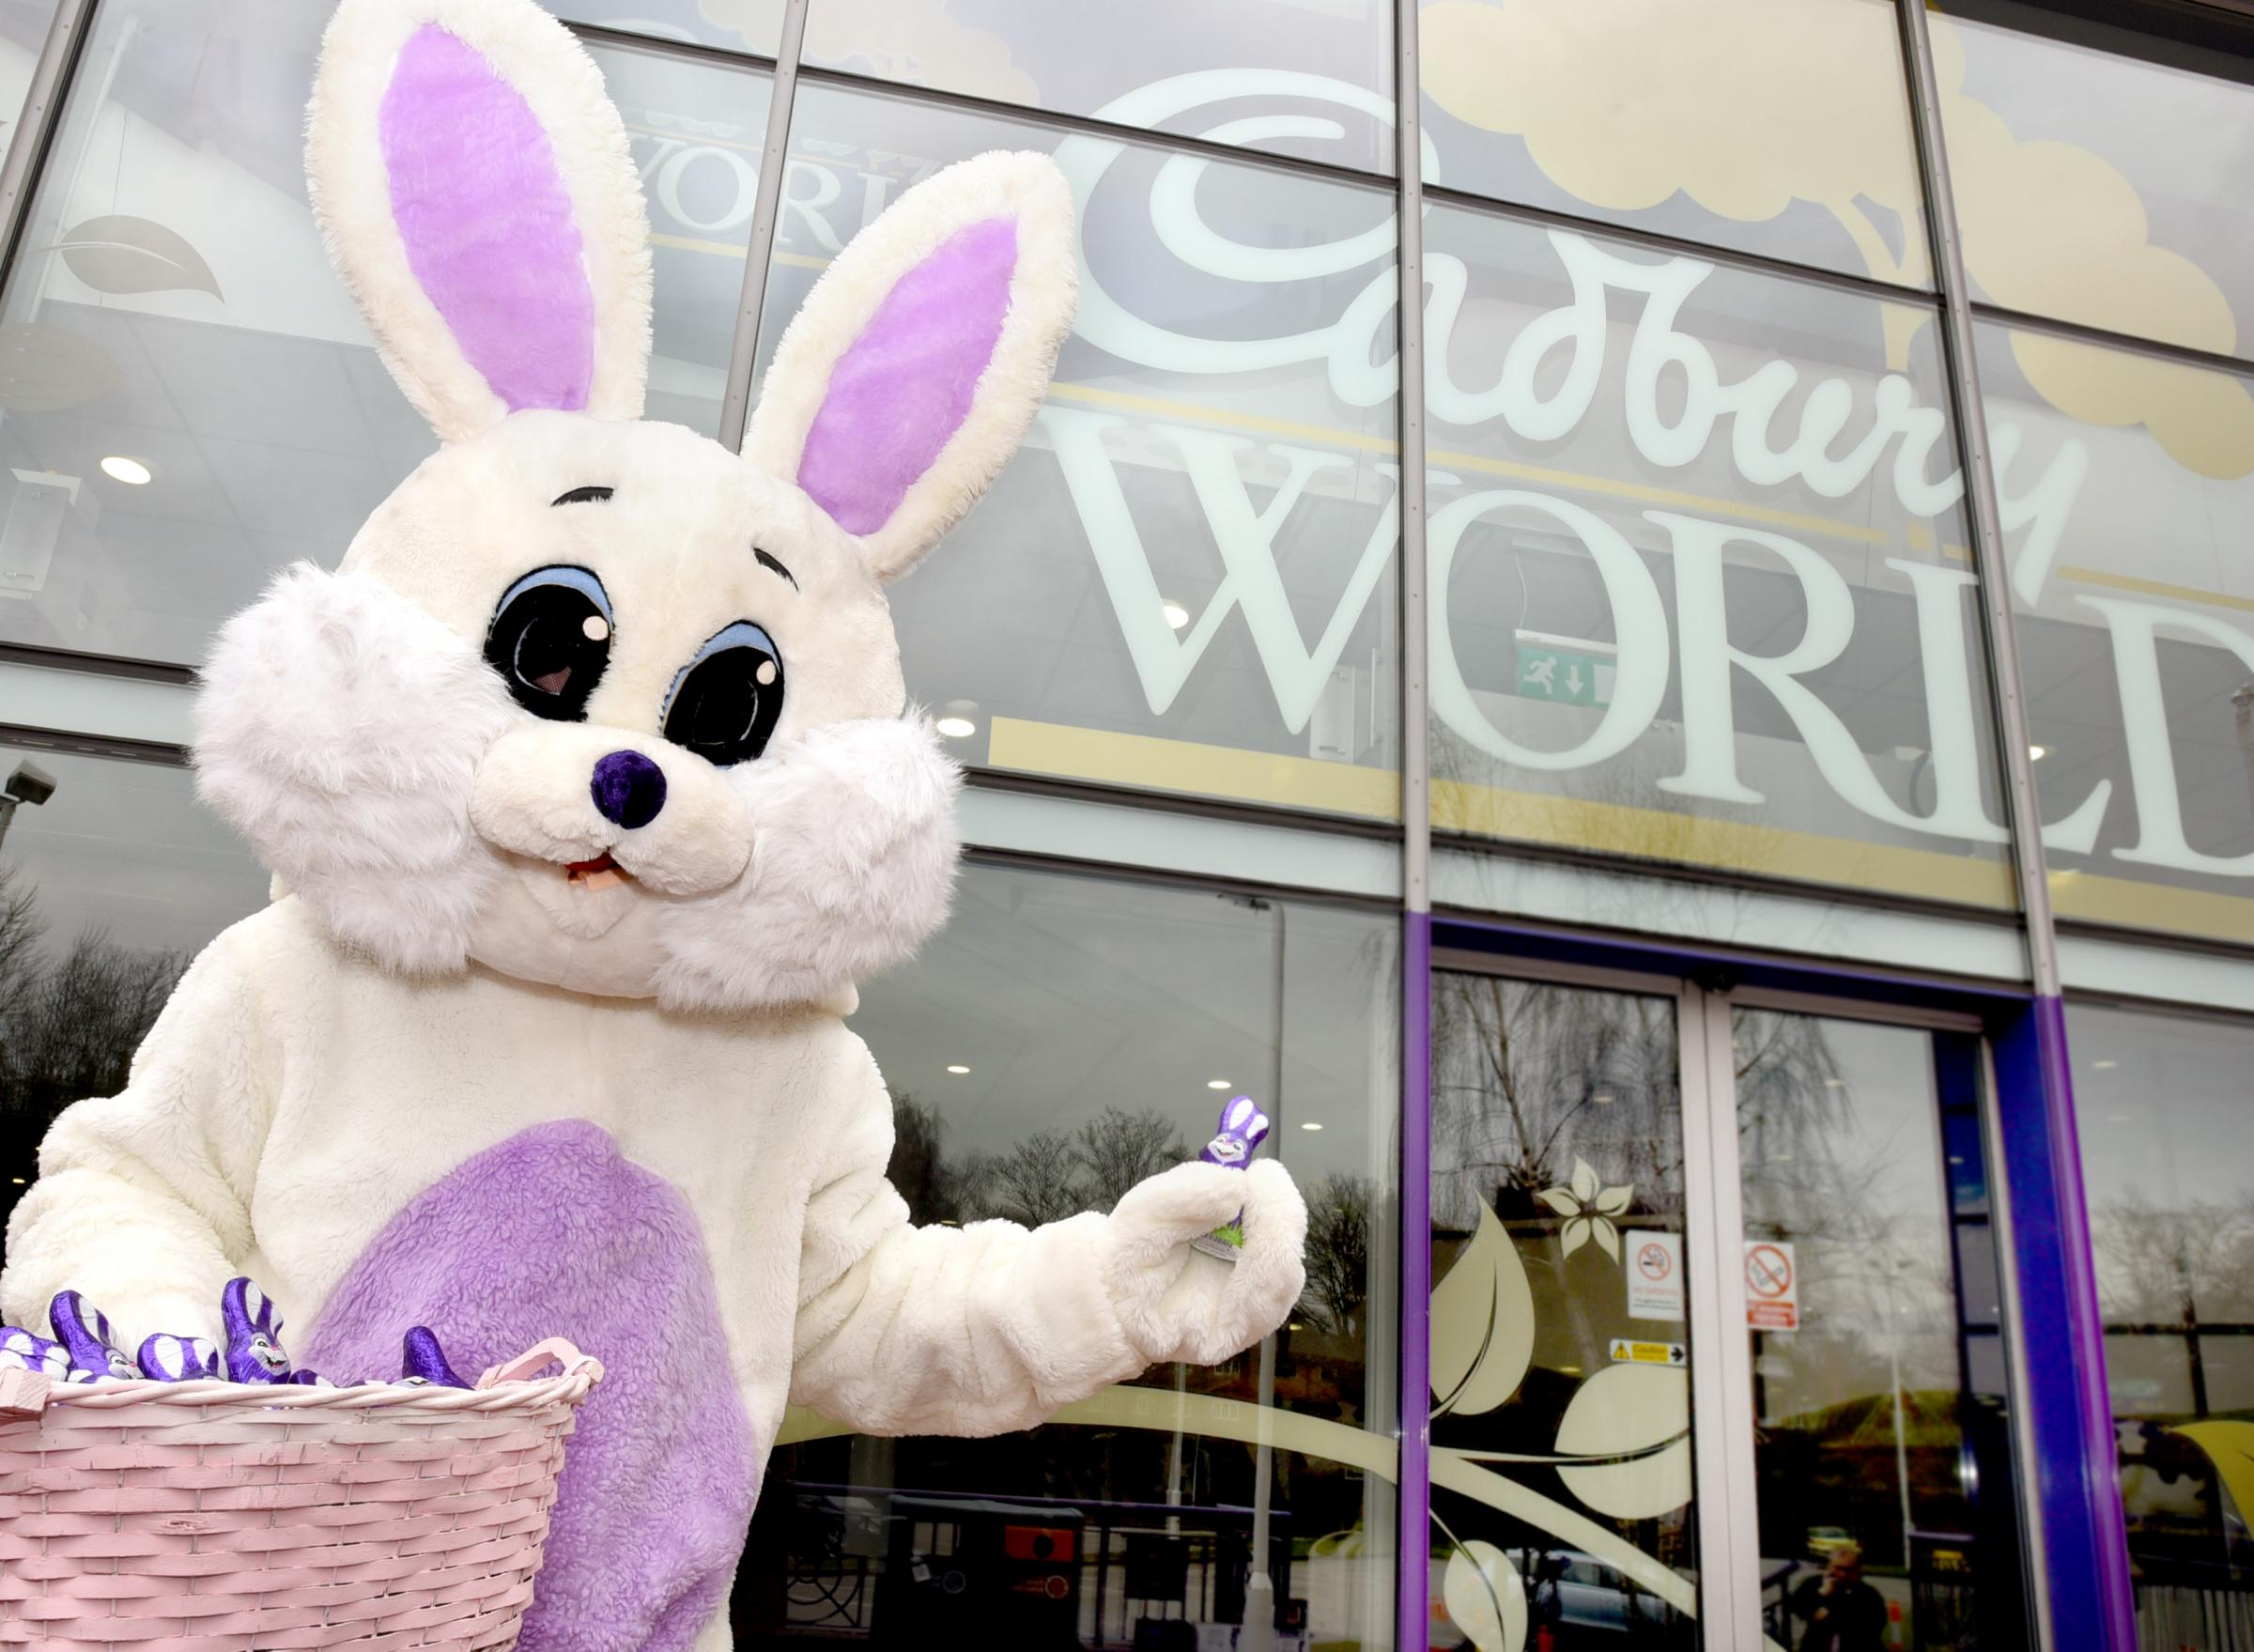 Egg-citing surprises in store at Cadbury World this Easter